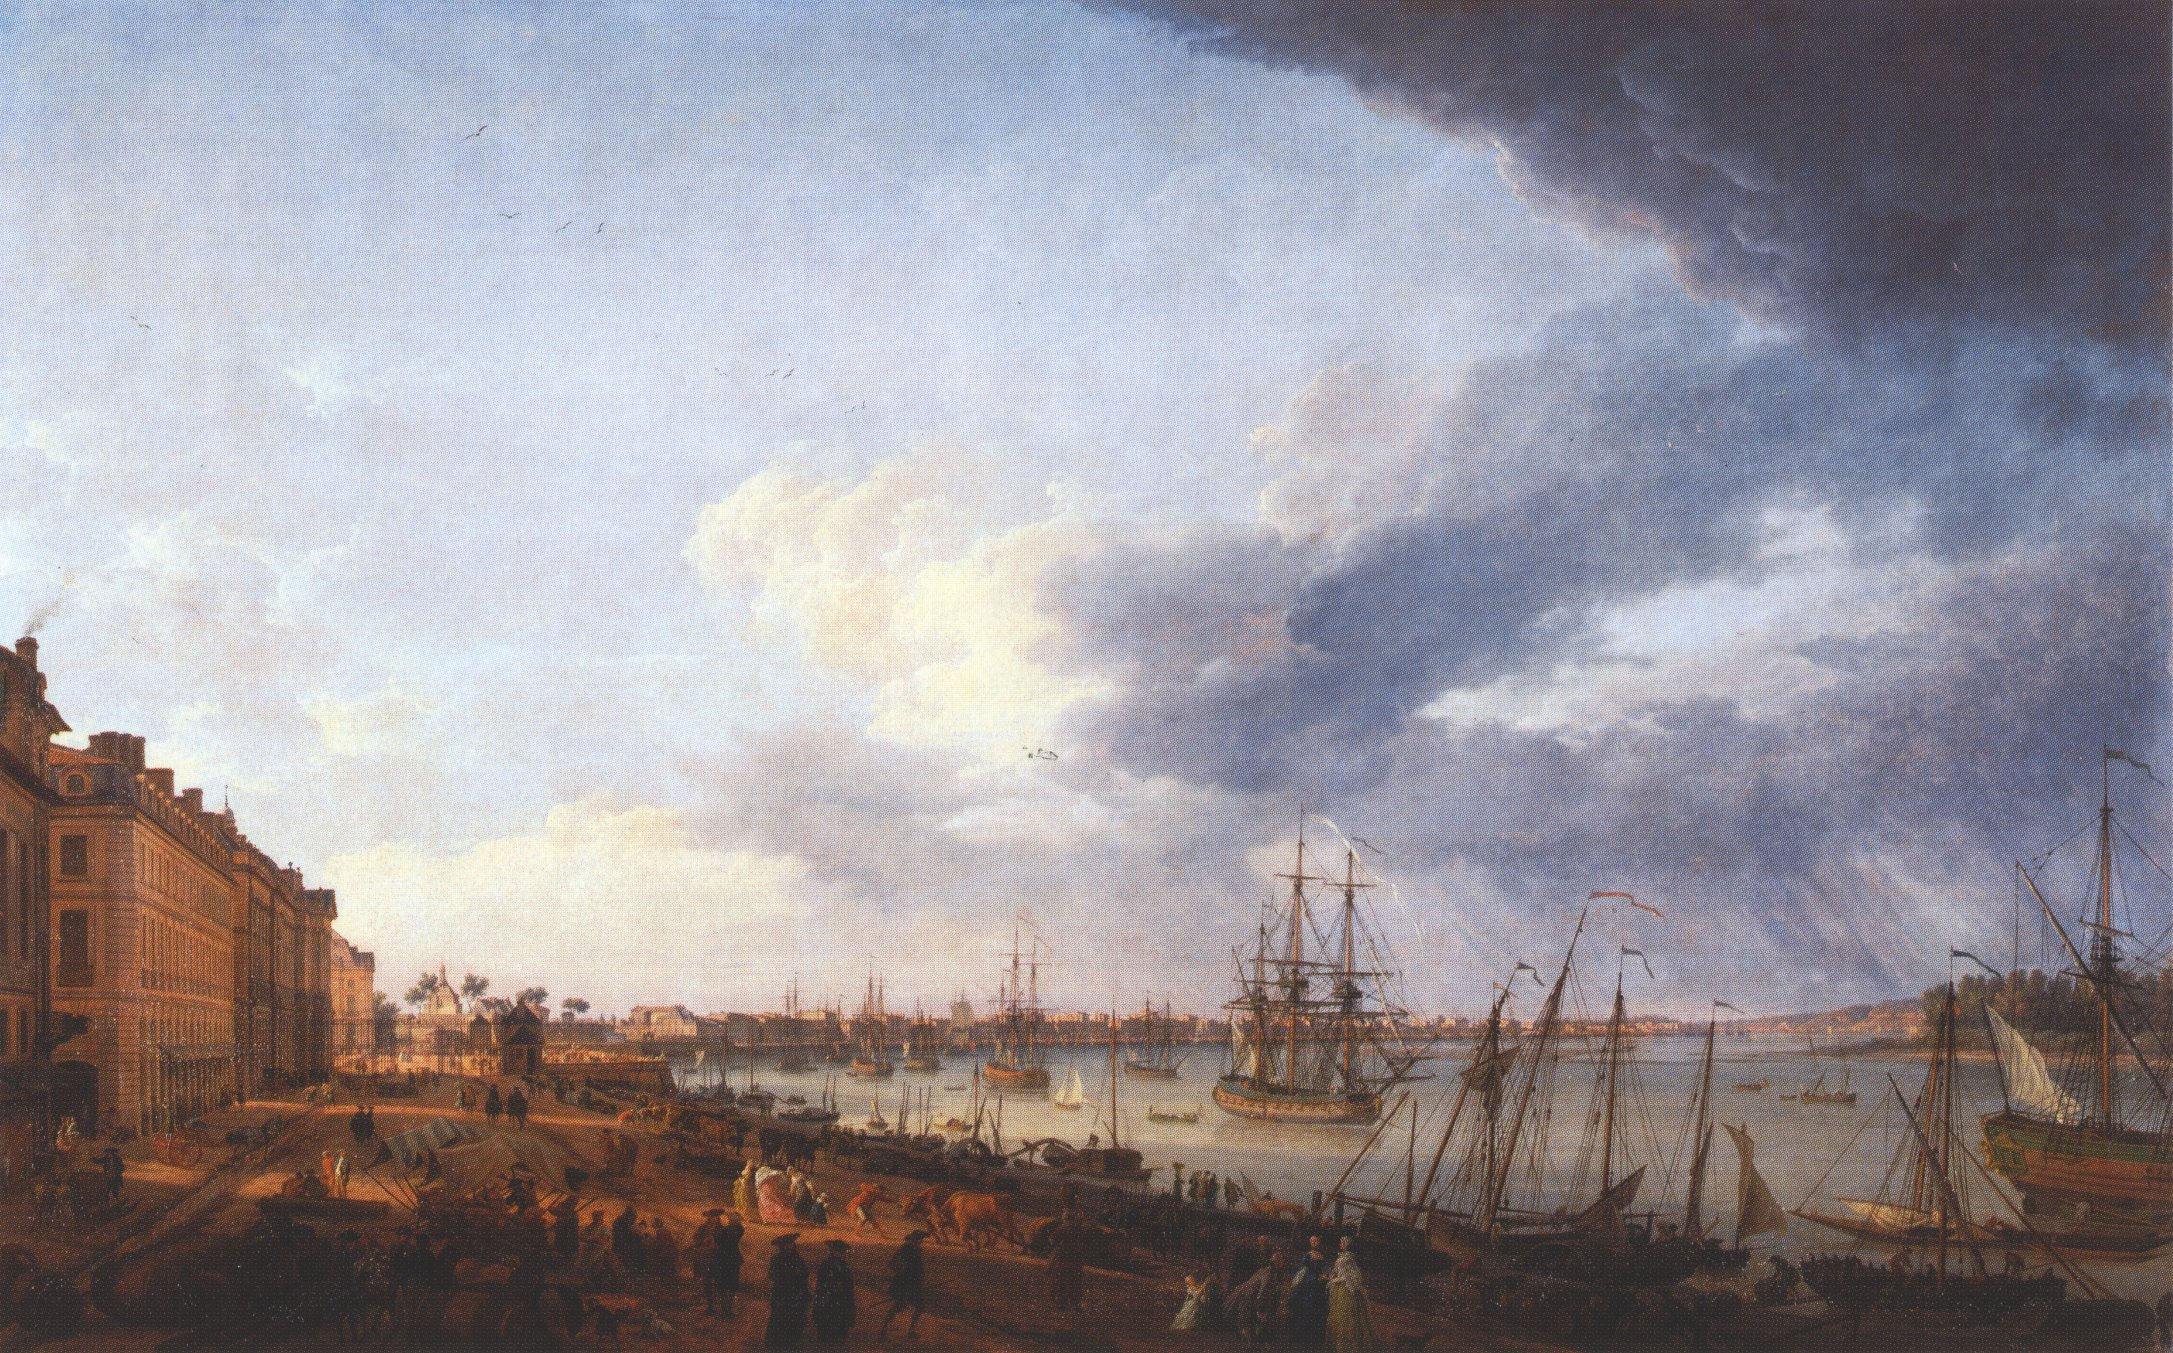 https://upload.wikimedia.org/wikipedia/commons/b/b7/Vernet-port-Bordeaux.jpg